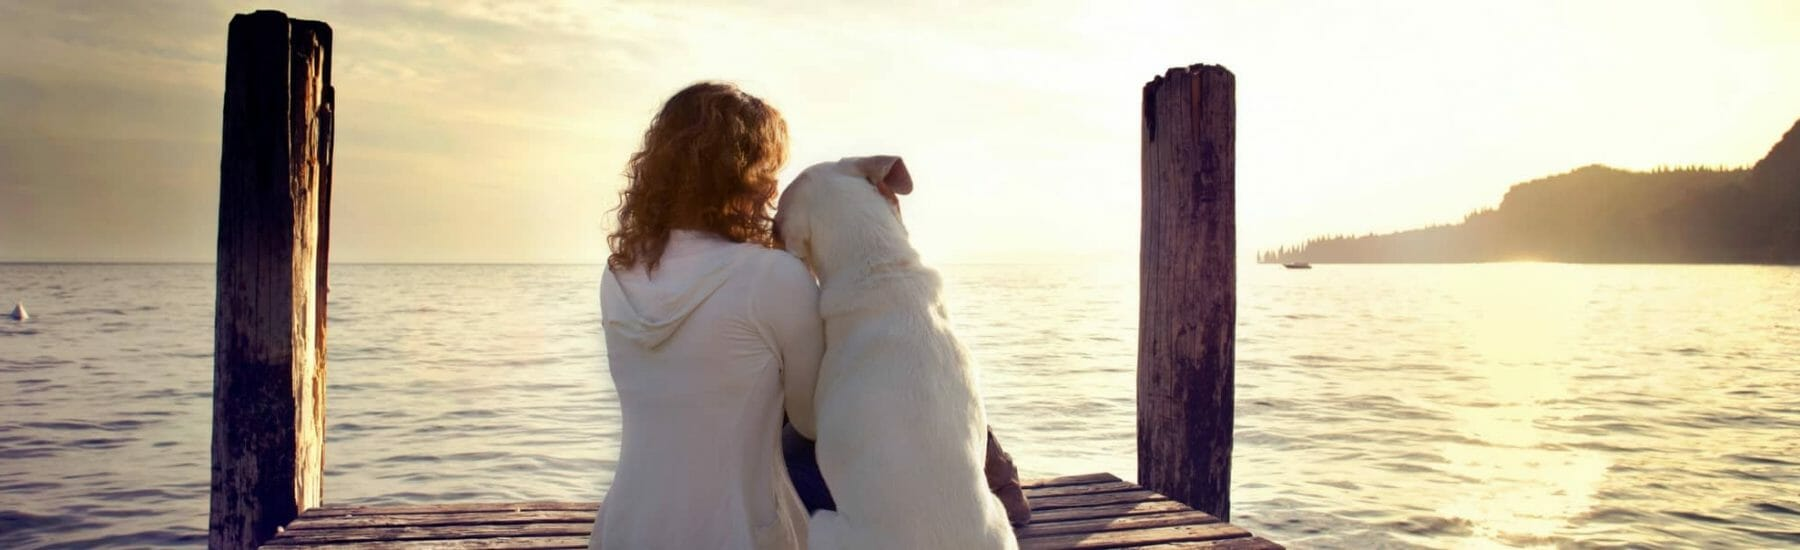 Girl and Dog Looking Out on a Dock